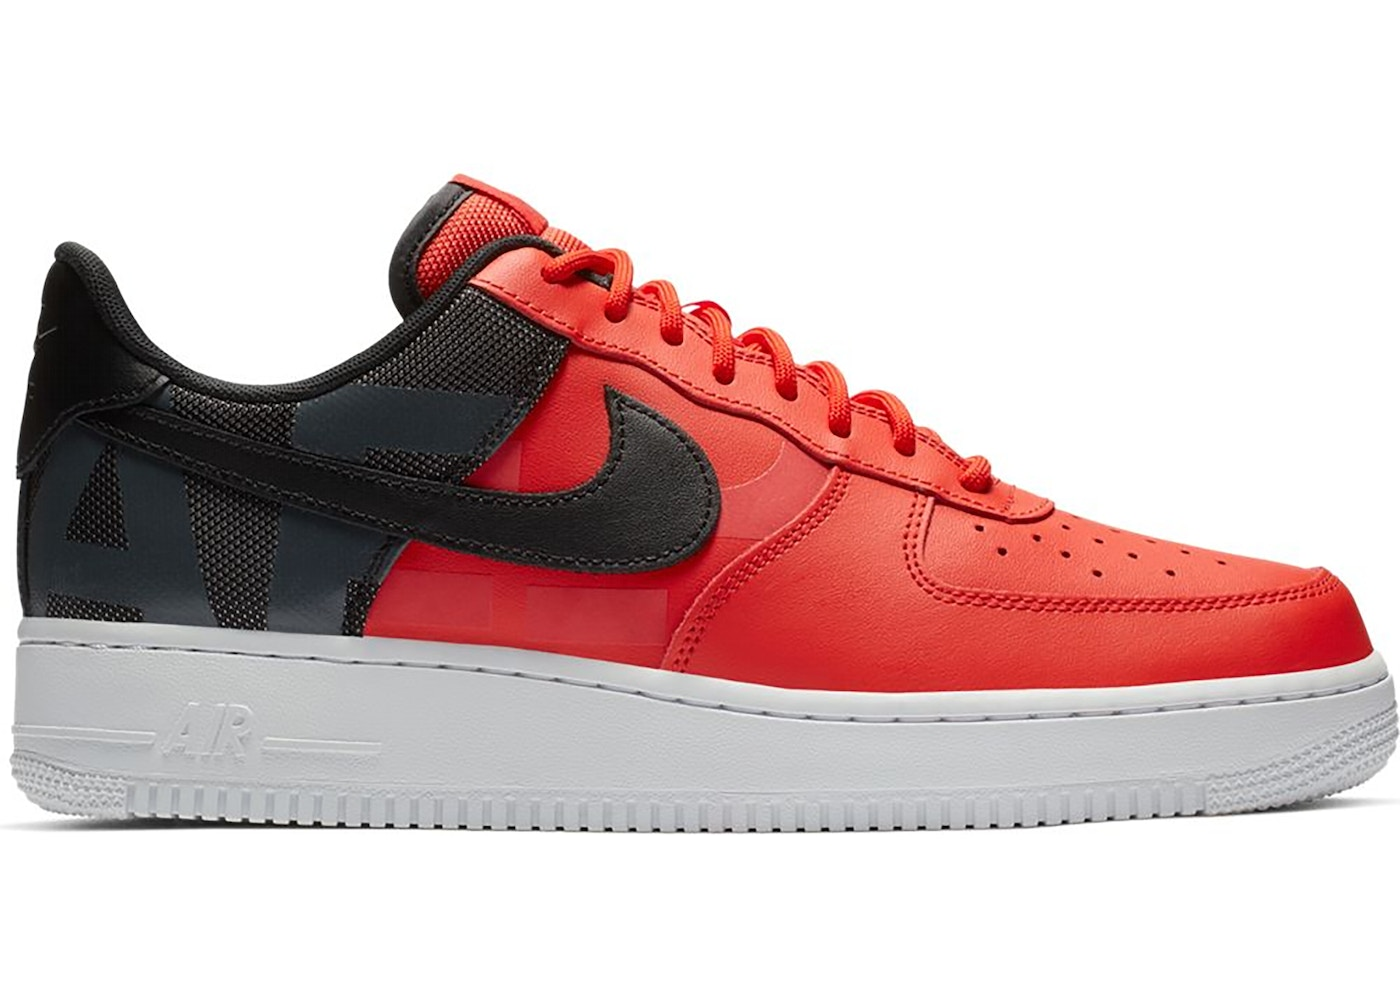 Air Force 1 Low LV 8 Habanero Red Black White